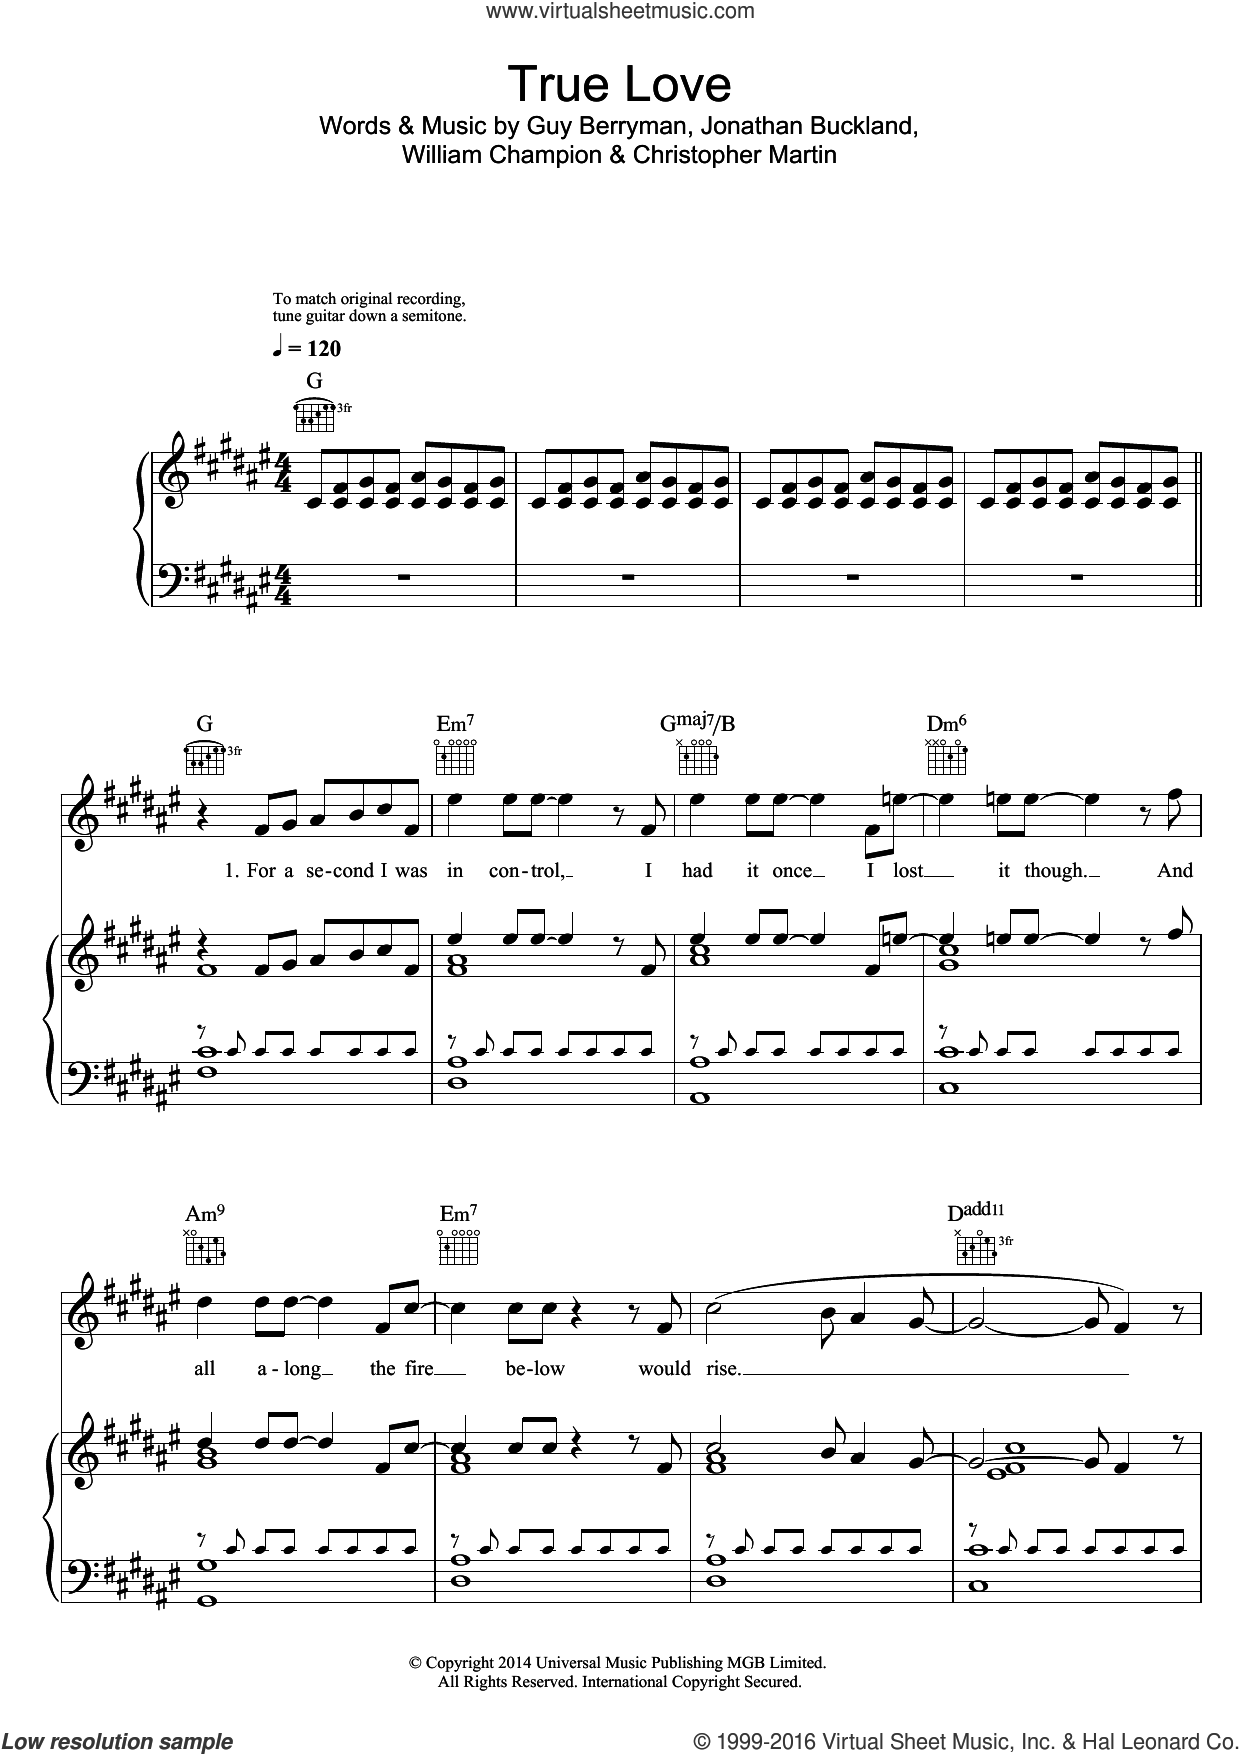 True Love sheet music for voice, piano or guitar by Coldplay, Christopher Martin, Guy Berryman, Jonathan Buckland and William Champion, intermediate skill level